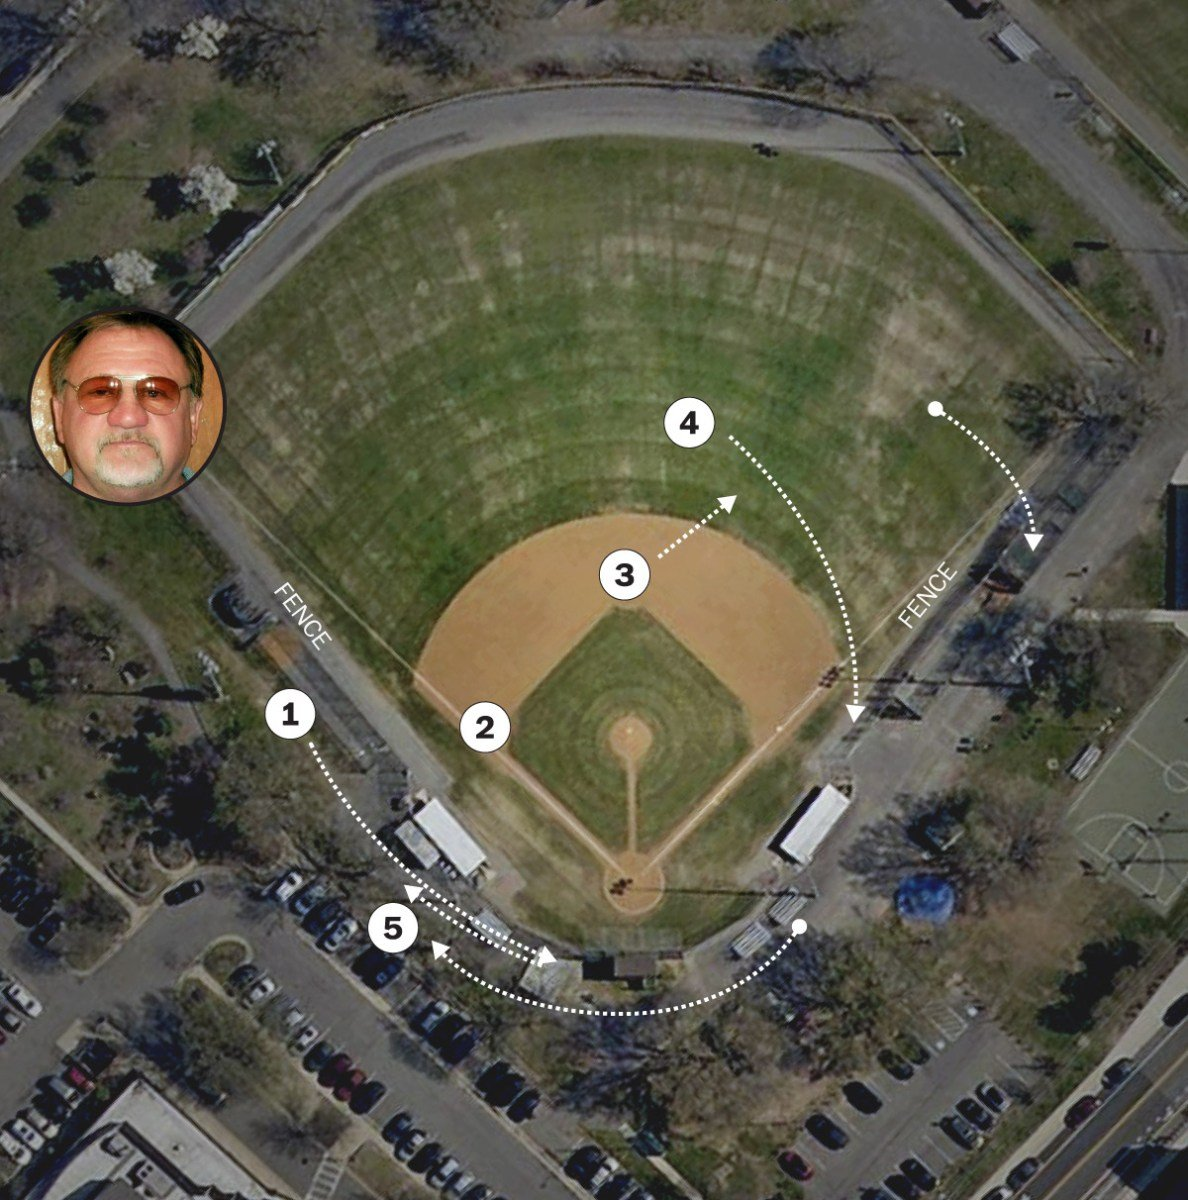 Here's How The GOP Baseball Shooting Occurred, Step-By-Step